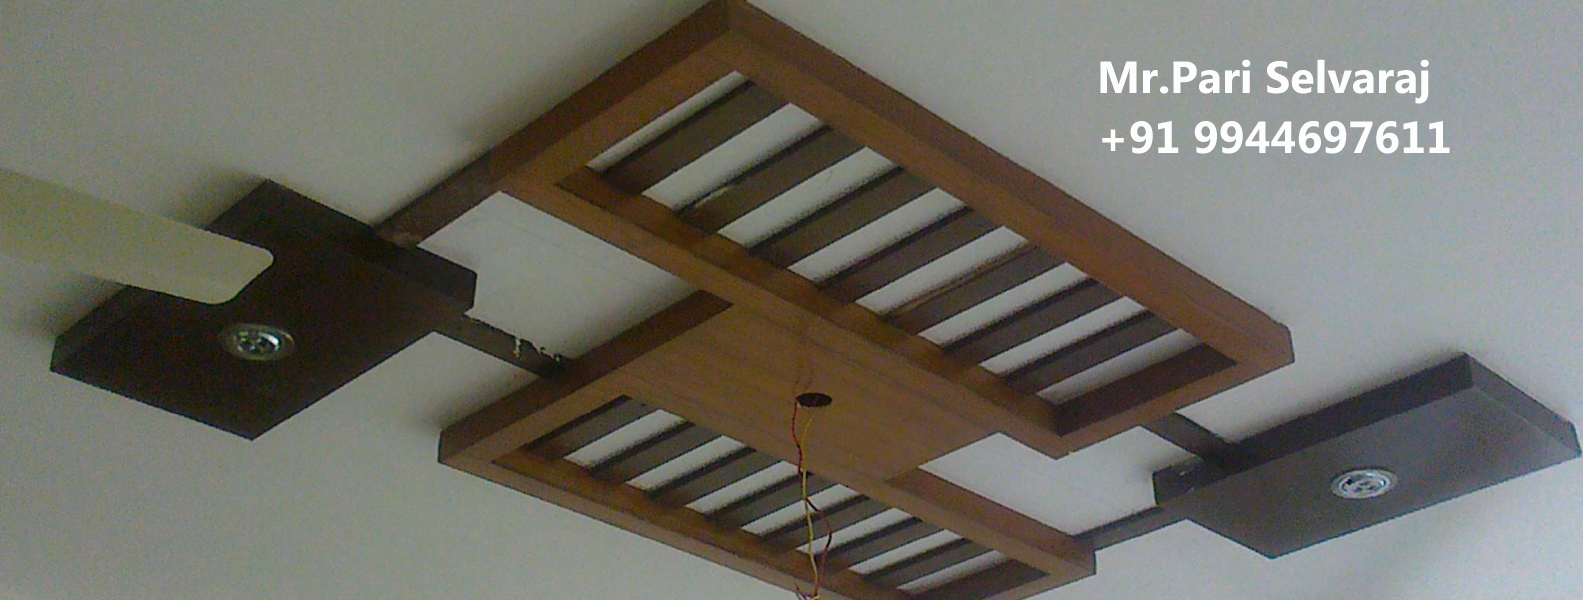 Pari False Ceiling::Acp Works,PVC Doors, Tirunelveli,Tuticorin,Nagercoil,Kottayam,Ernakulam,Kollam,Thrissur,wayand,Malappuram,Thiruvananthapuram,Kozhikode,Pathanamthitta,Alappuzha,Idukki,Kannur,kasaragod,Kollam,Kottayam,Kozhikode,Malappuram,Palakkad,,Pathanamthitta,Thiruvananthapuram,Thrissur,Wayanad ,kasaragod,Kannur,Kollam,Vellore,Villupuram,Virudhnagar,Tirupur,Theni,Nagercoil,Theni,Pollachi,Rameswaram,Gypsum Board False Ceiling,Grid False Ceiling and Gypsum Partition for commercial and residential sectors